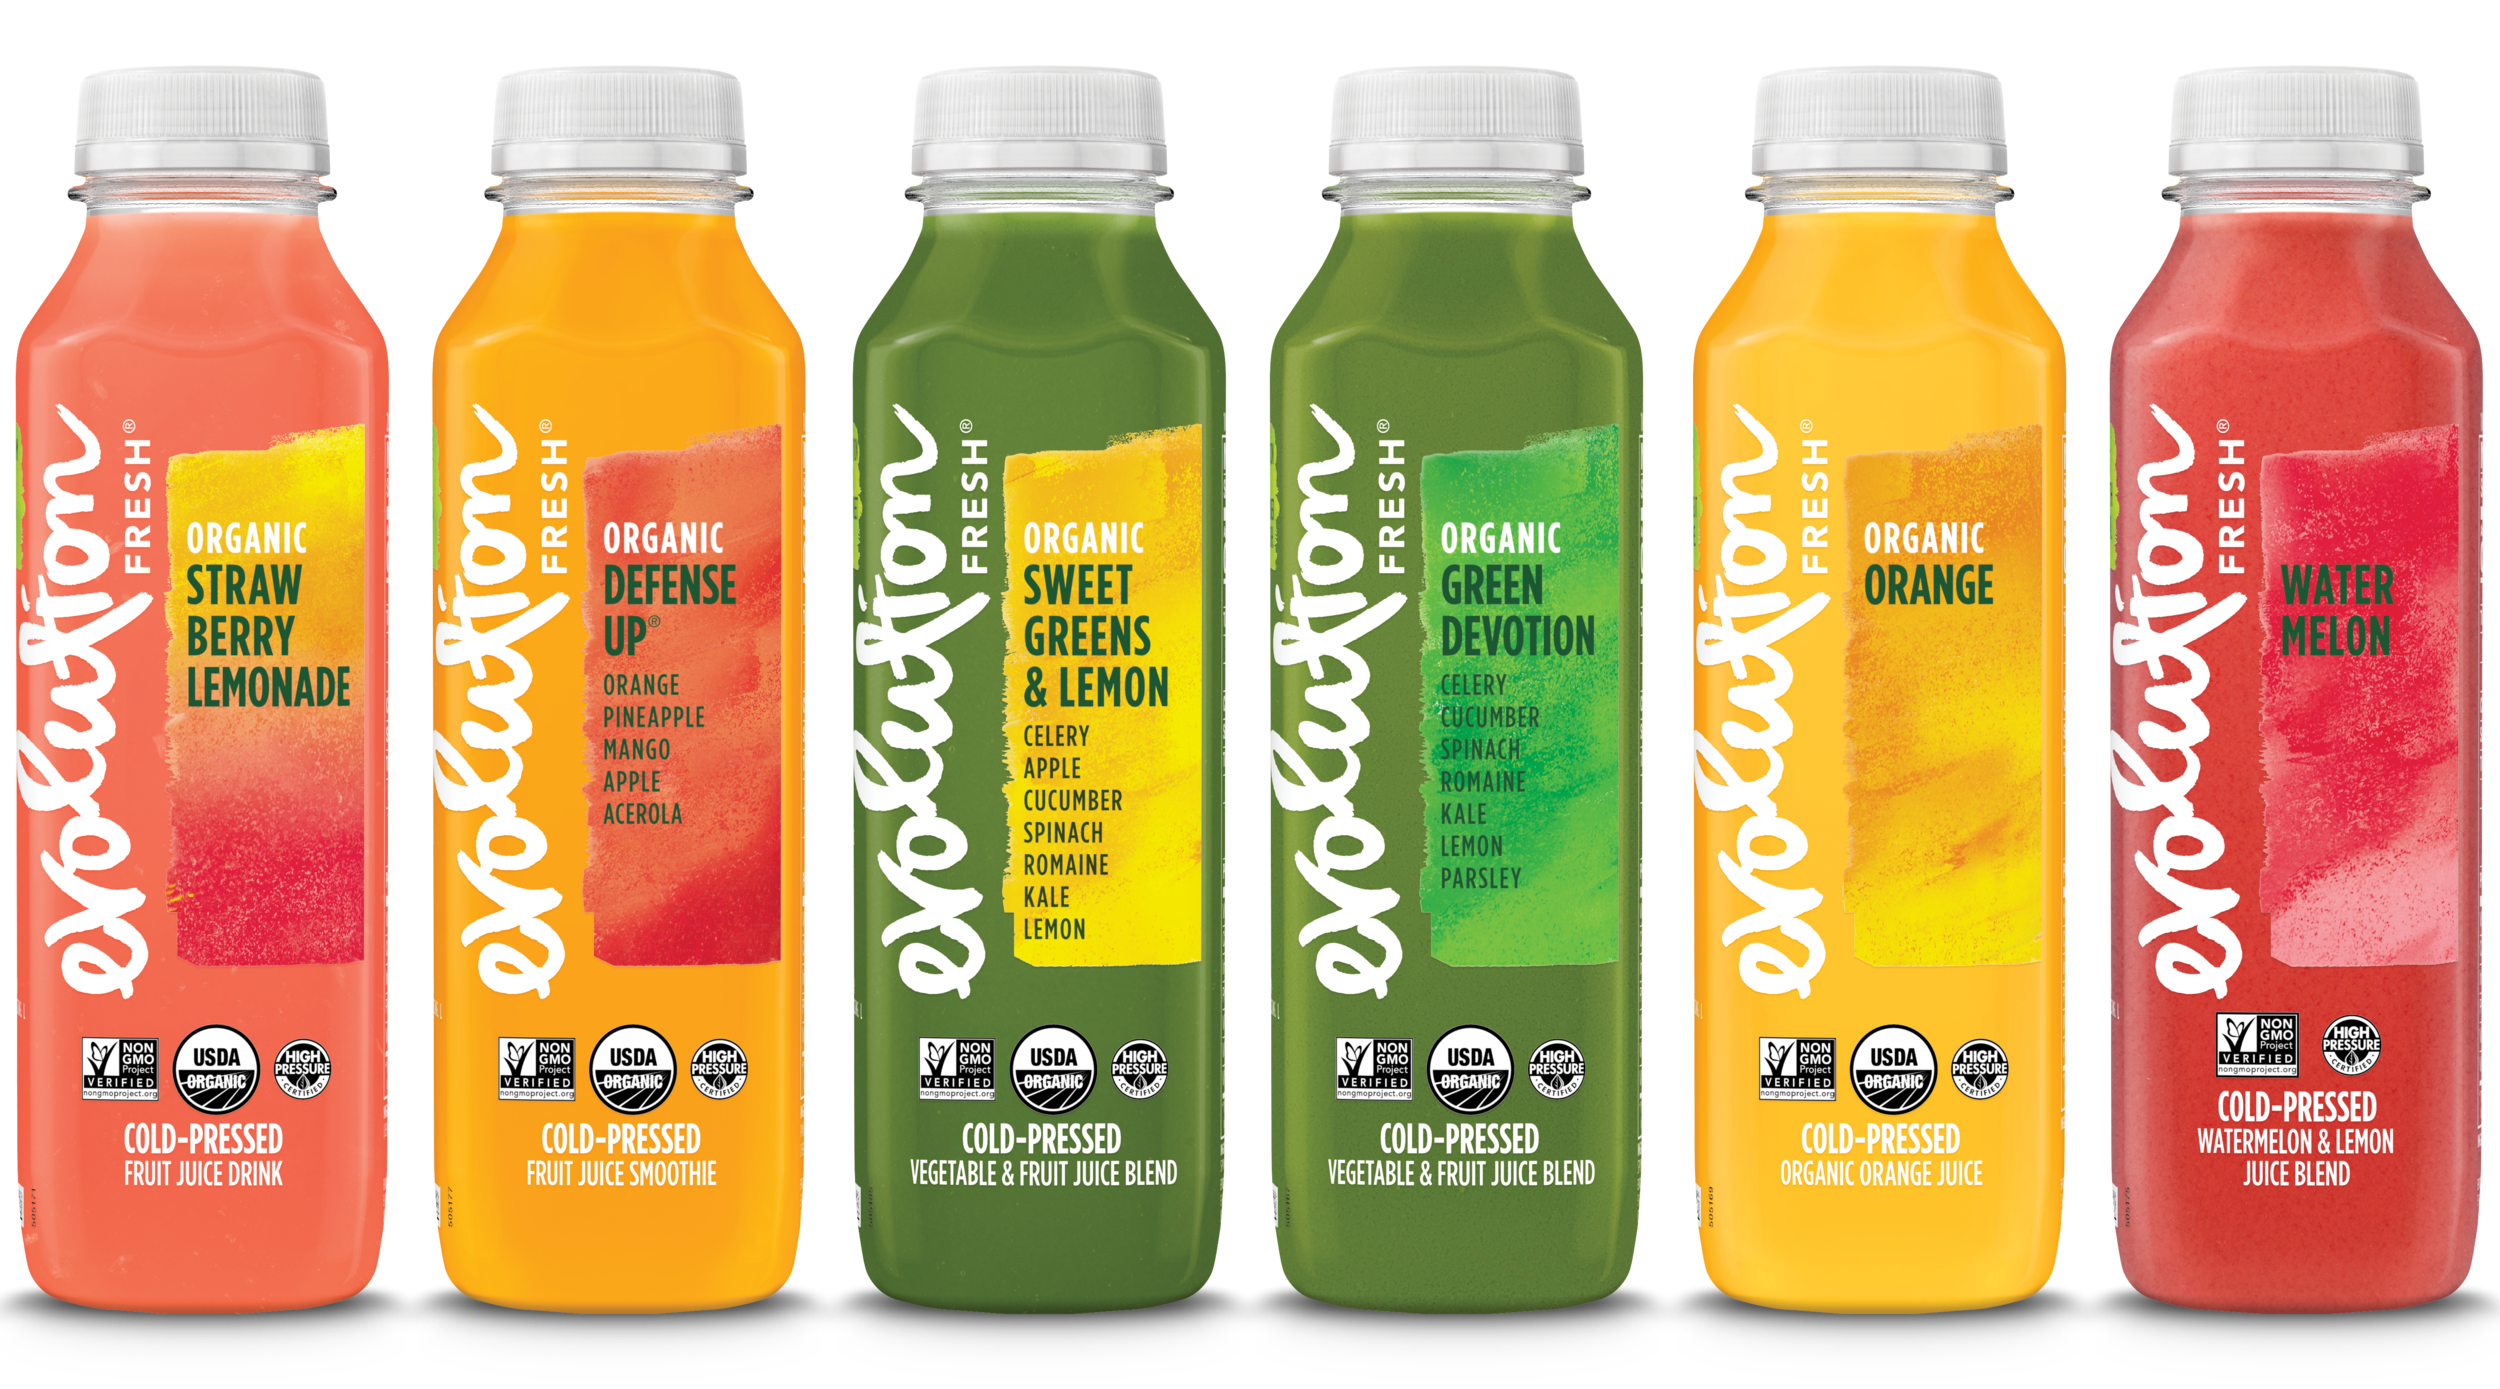 Evolution Fresh   Evolution Fresh offers cold-pressed juices and smoothies in pursuit of the most delicious, most nutritious juice experience.  * Juices are high pressure processed.